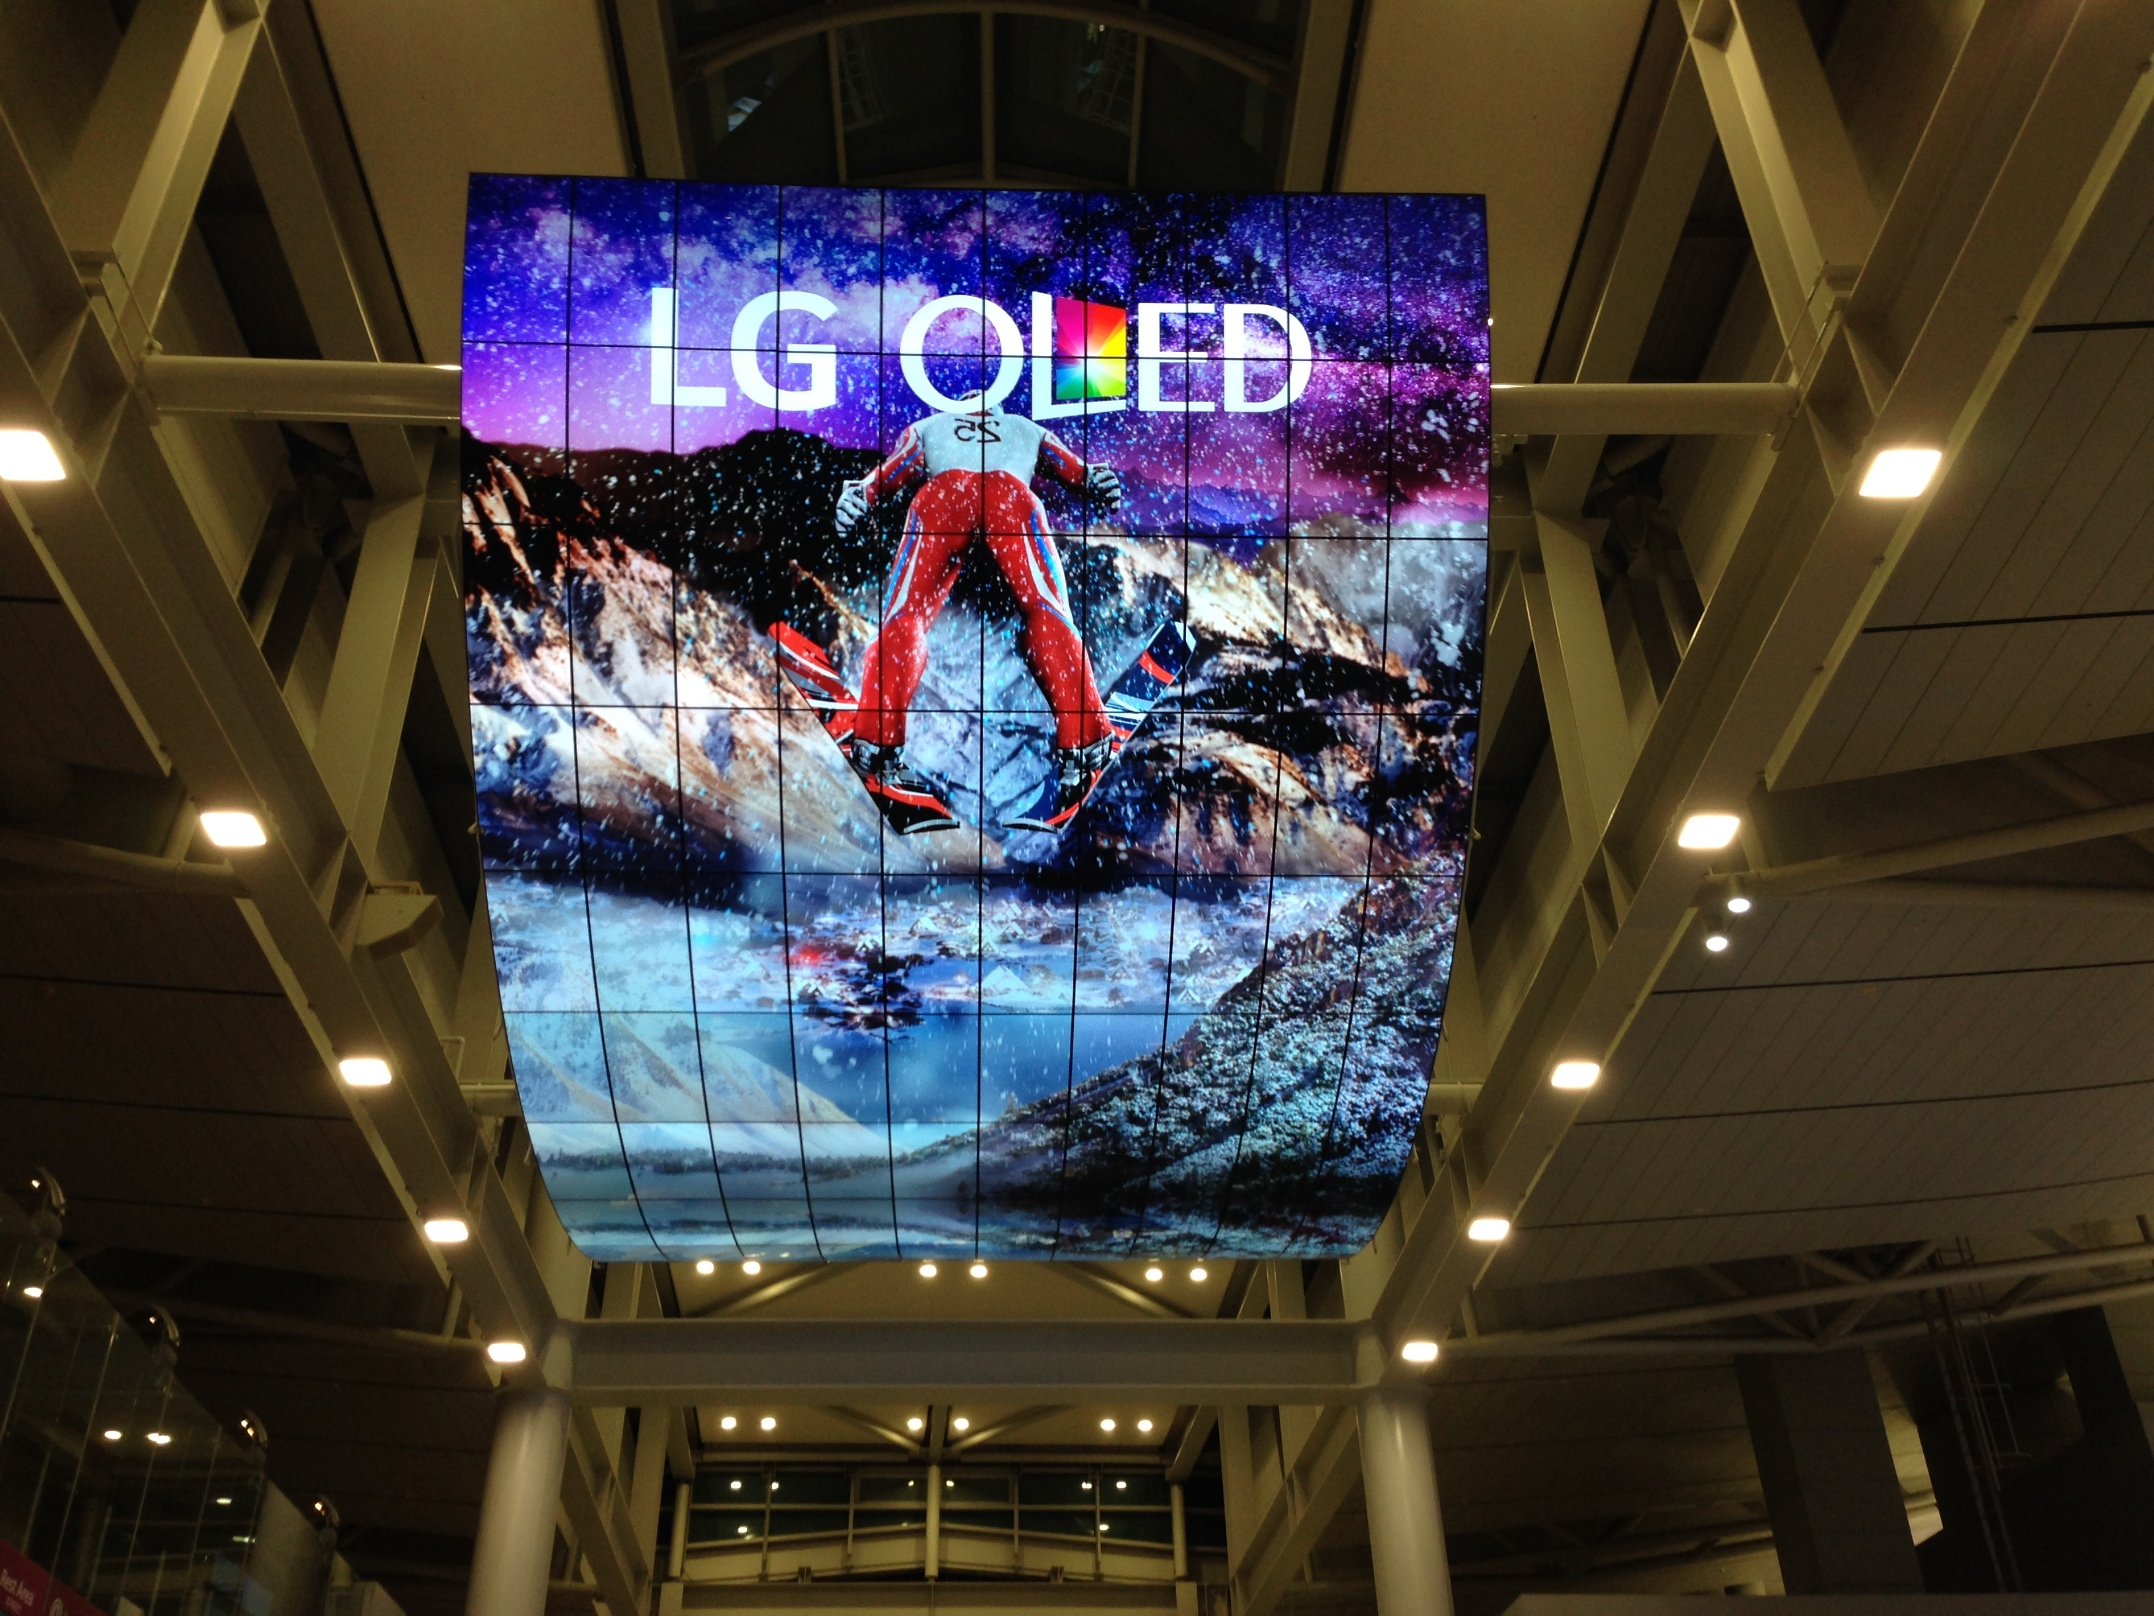 LG_OLED_Seoul_Incheon Airport_jan 2016